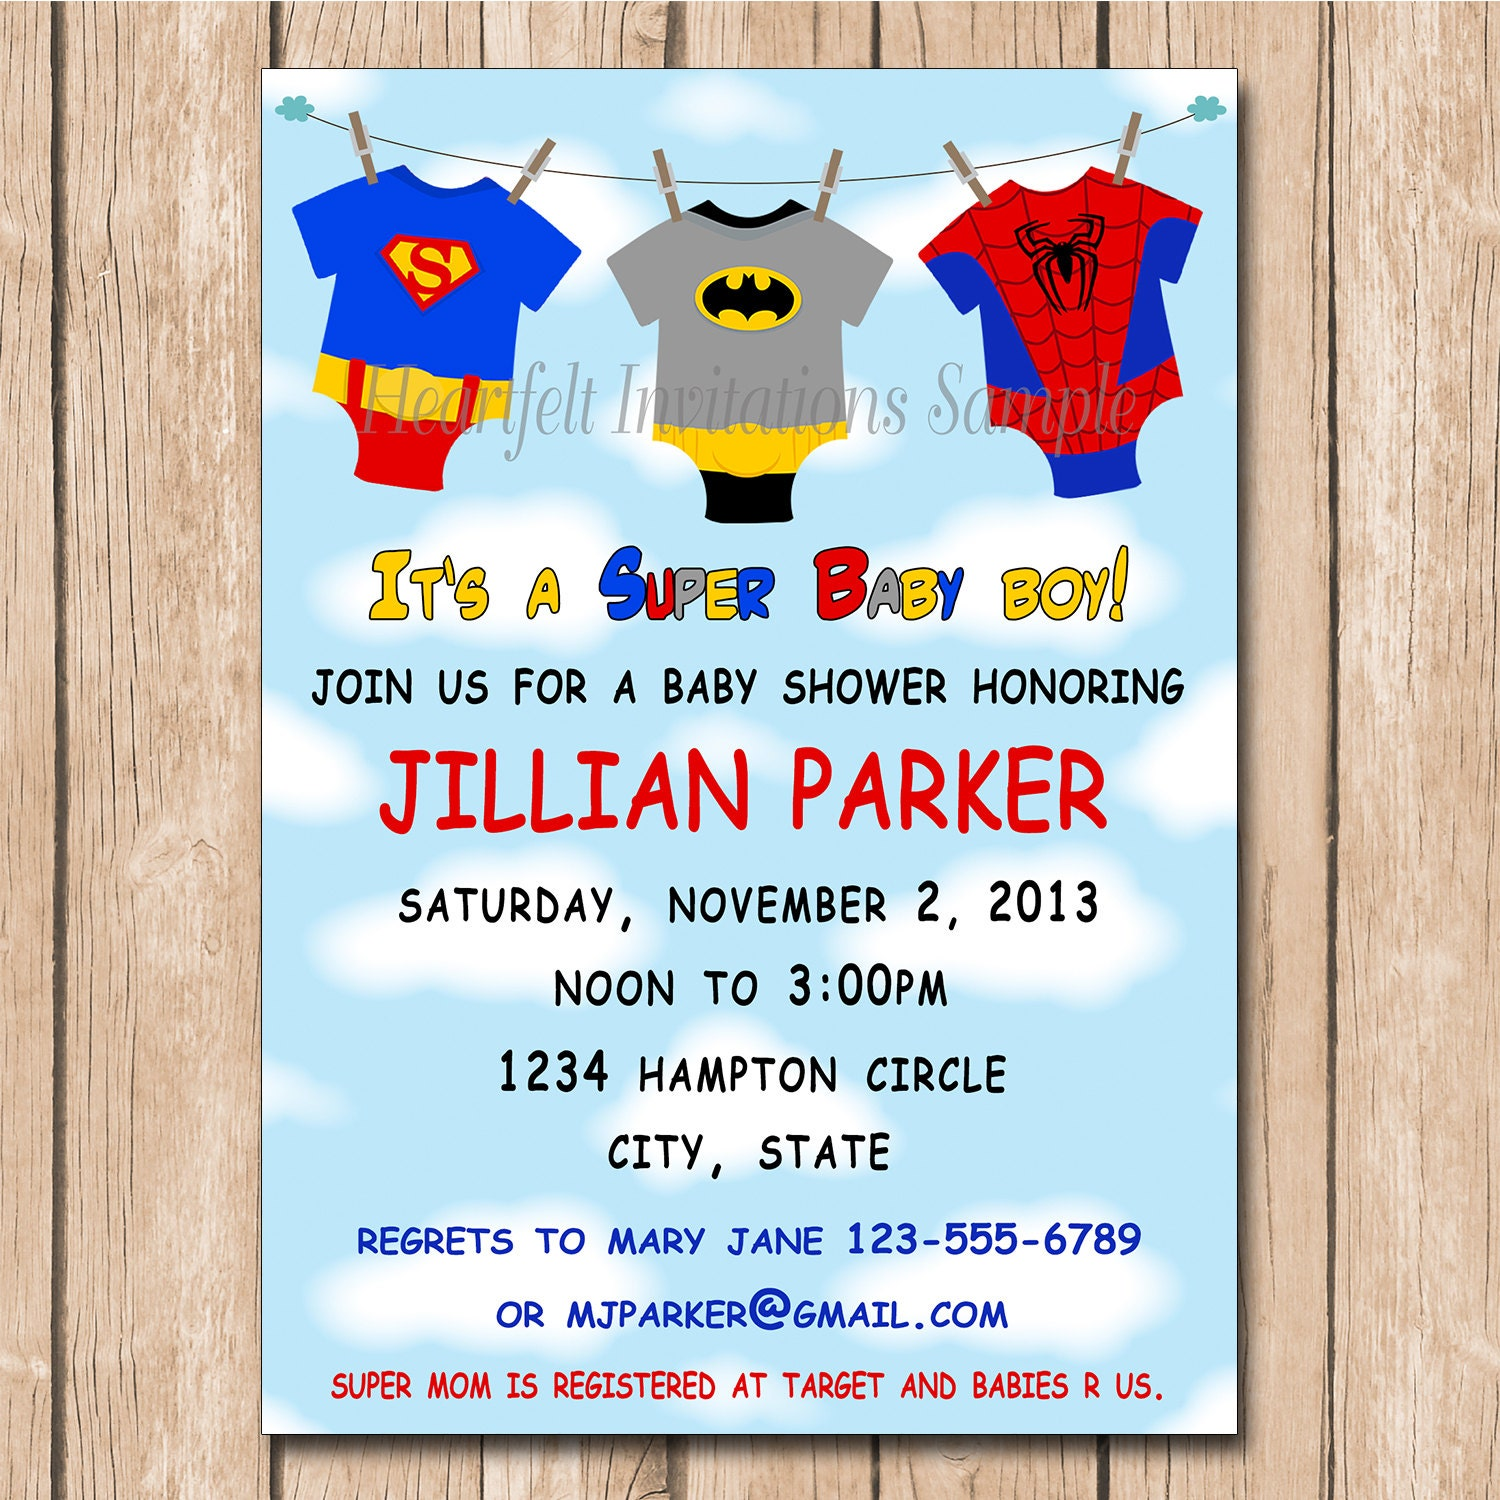 Order Baby Shower Invitations Online | alesi.info